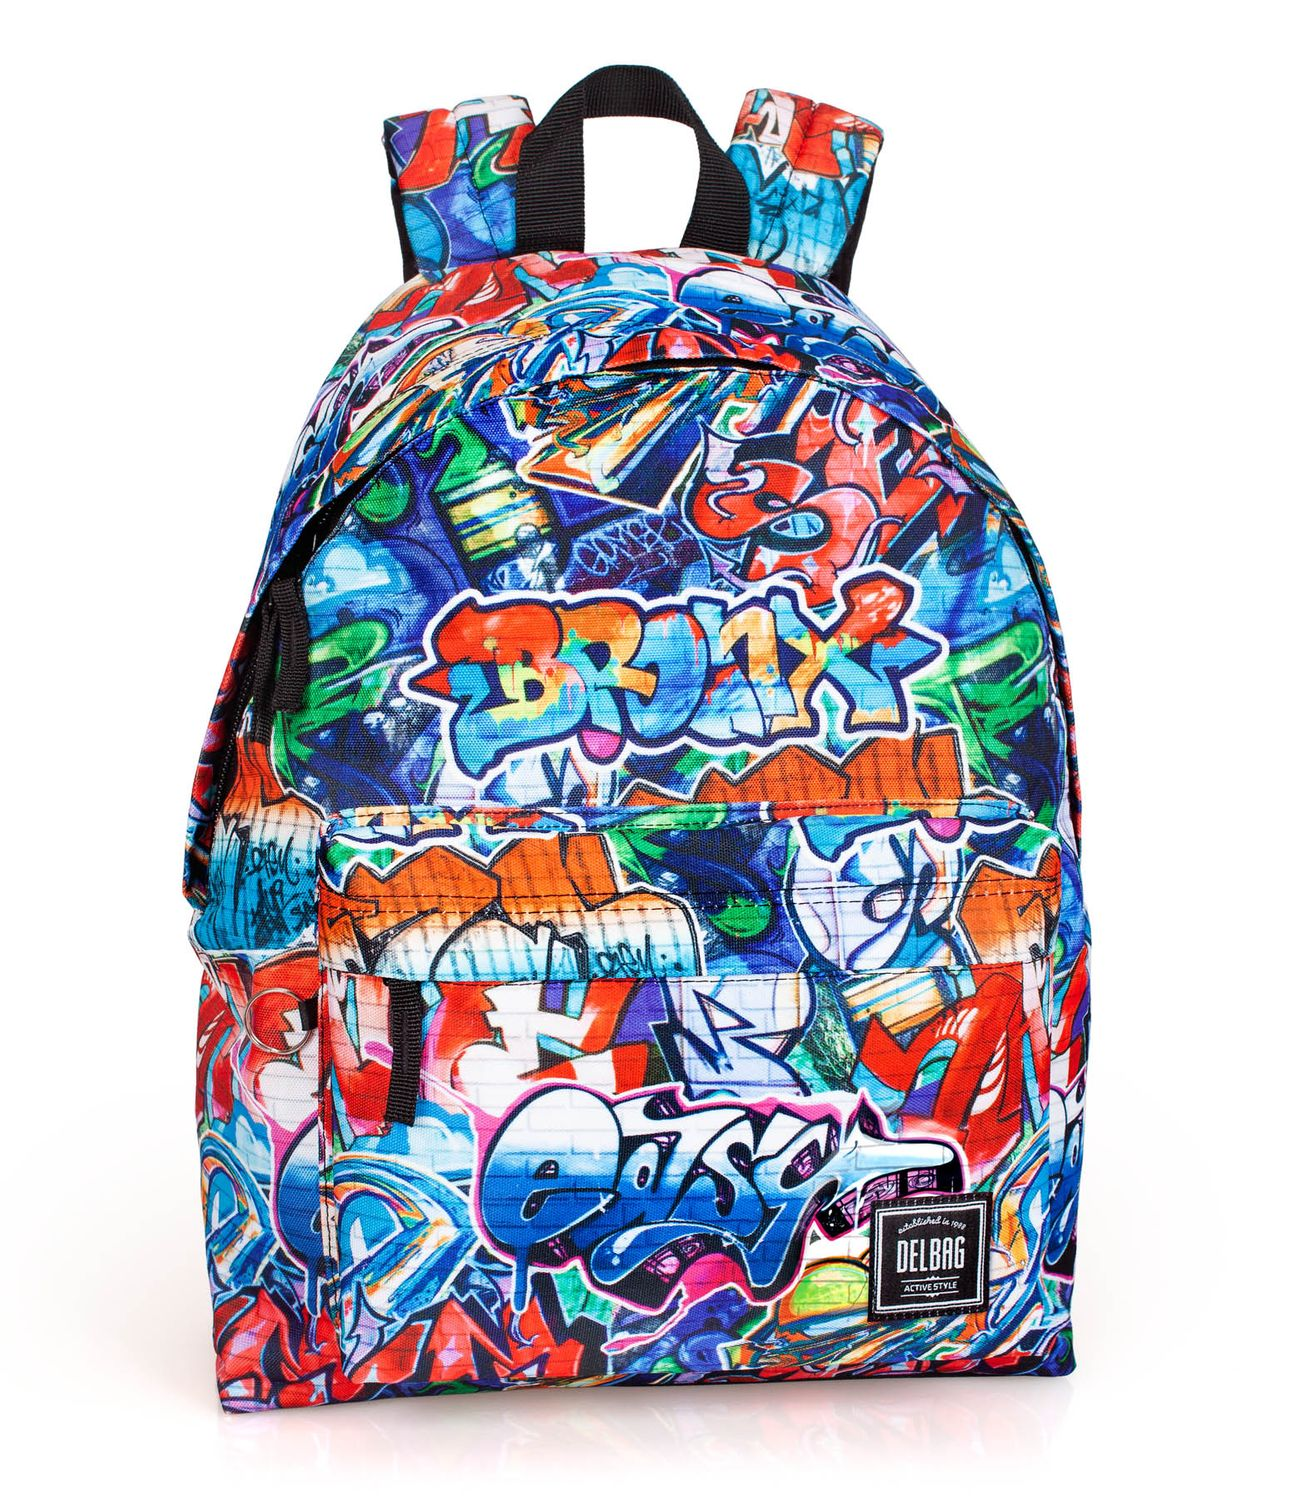 Backpack Rucksack GRAFFITI BRONX – image 1